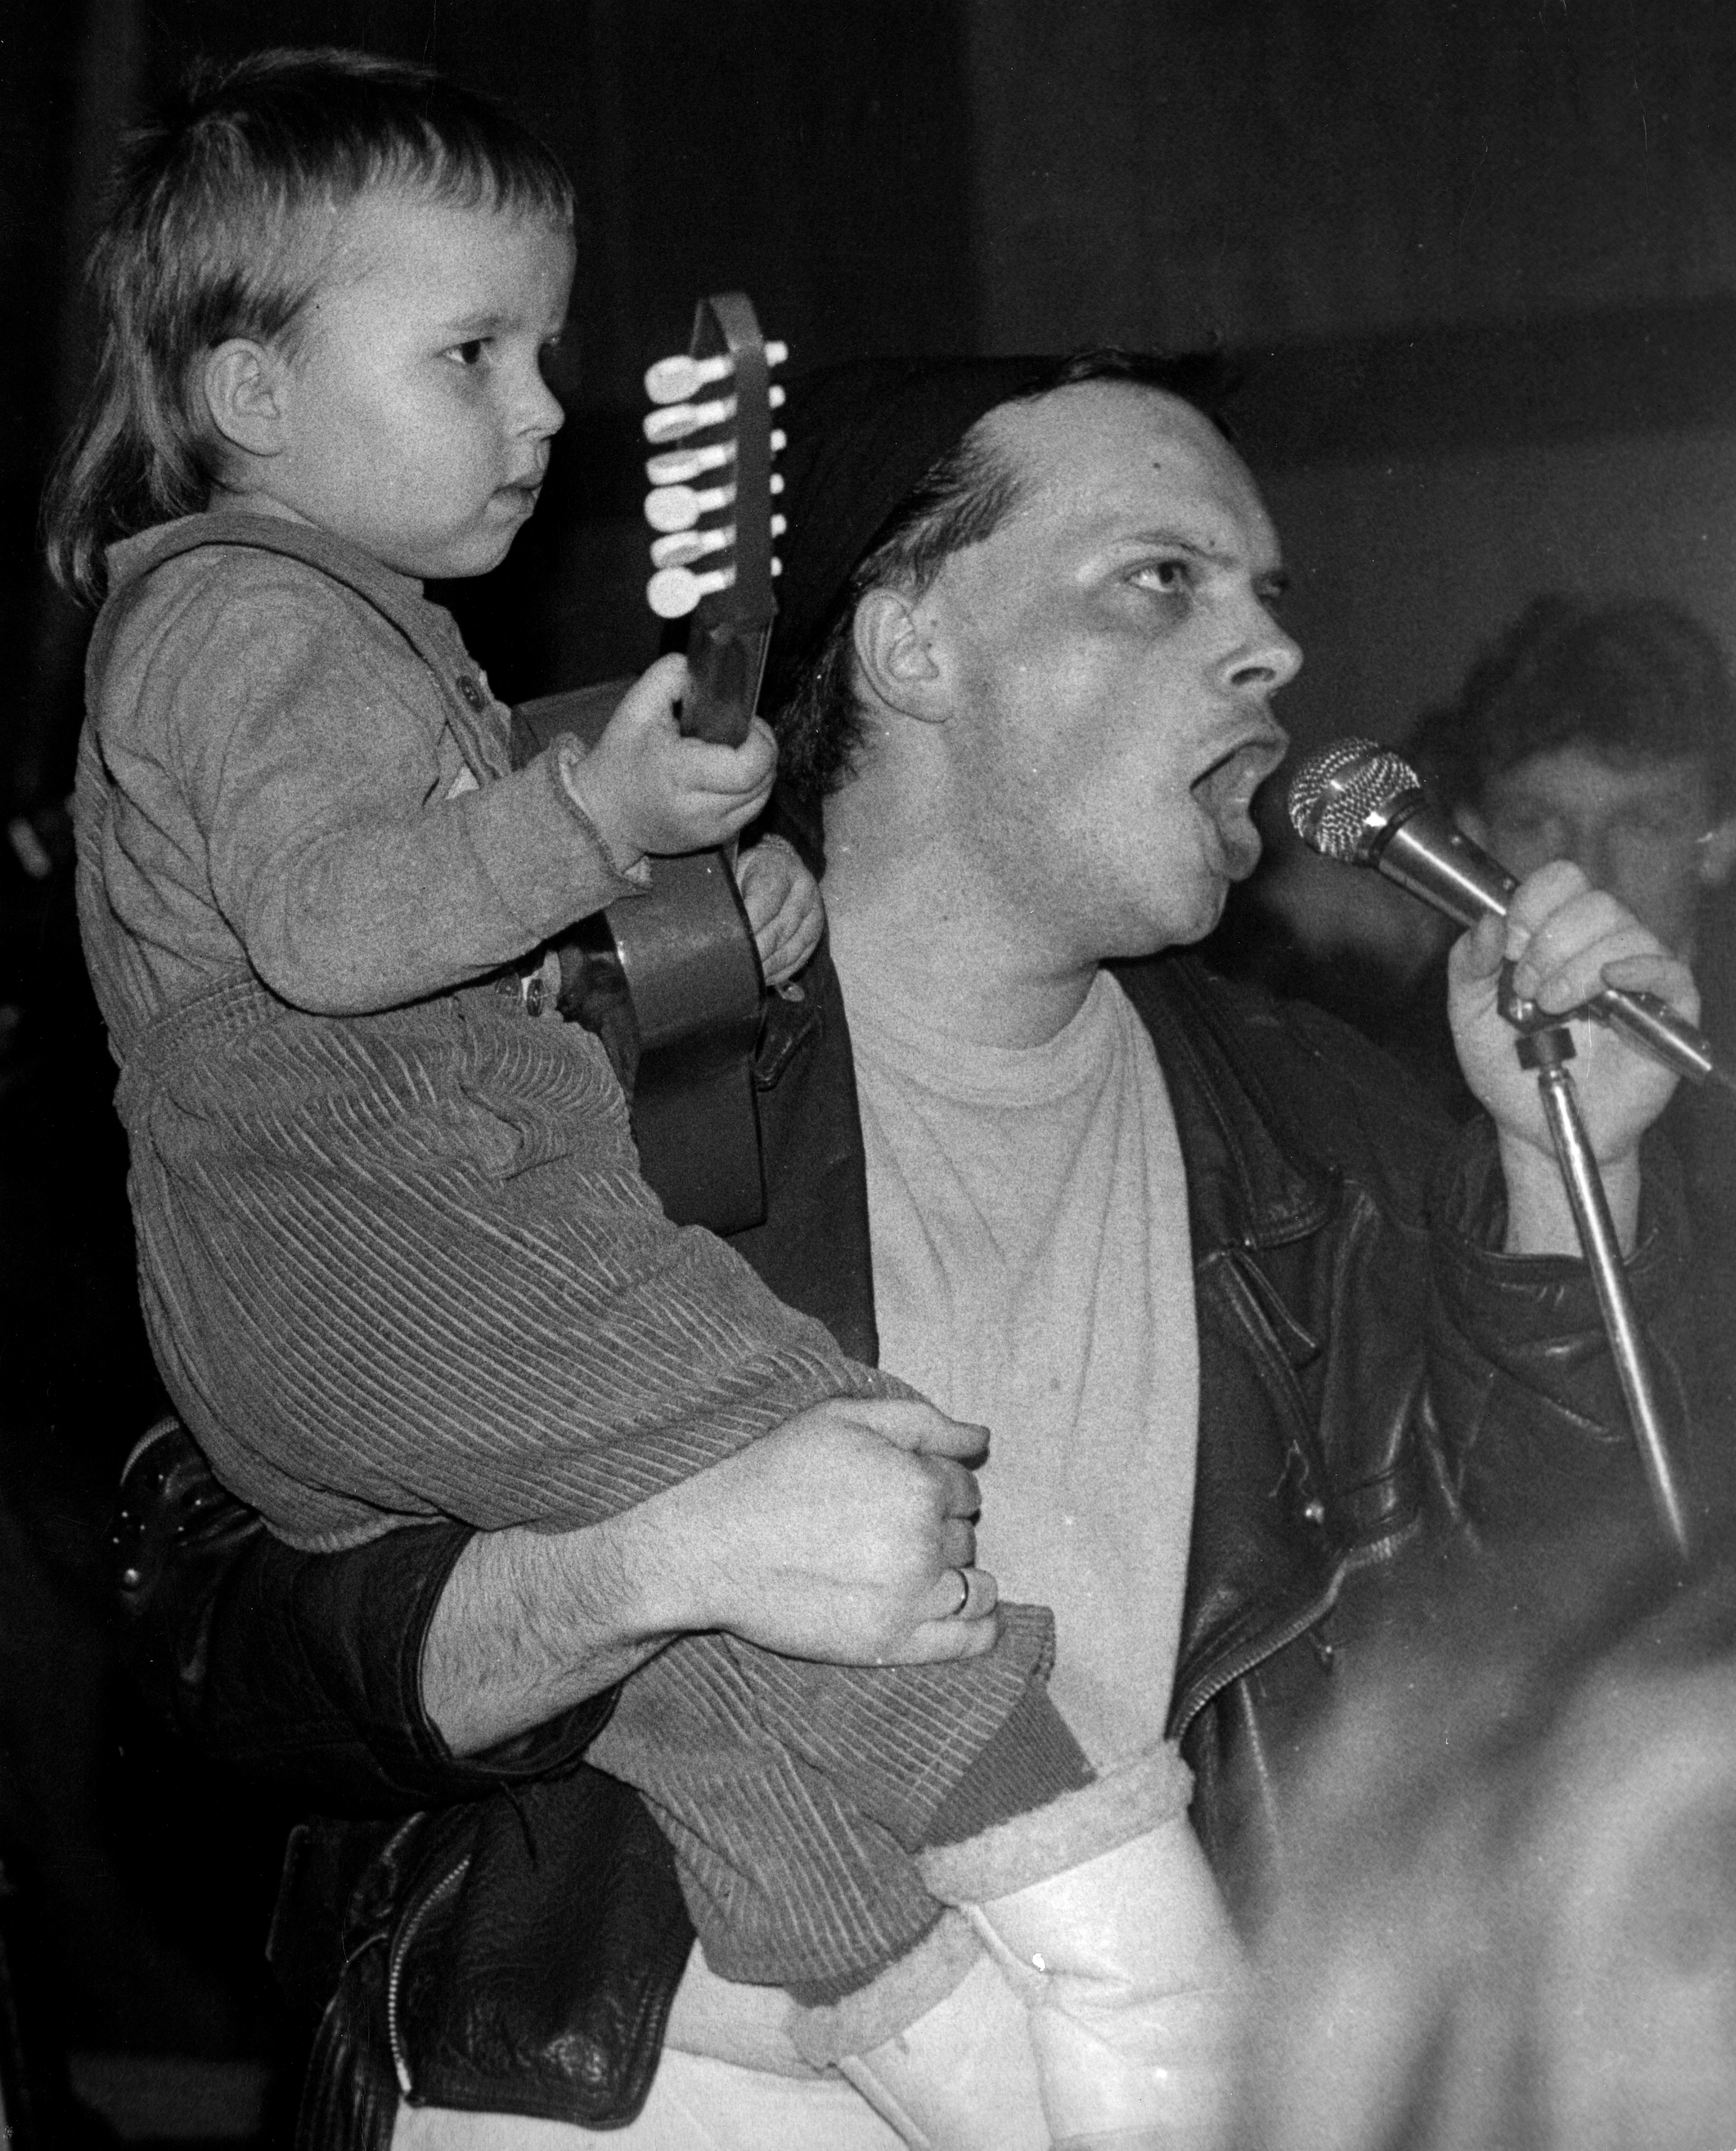 Krzysztof Skiba with his son Tymoteusz during the Big Cyc concert in student club Olimp in Łódź in 1988.